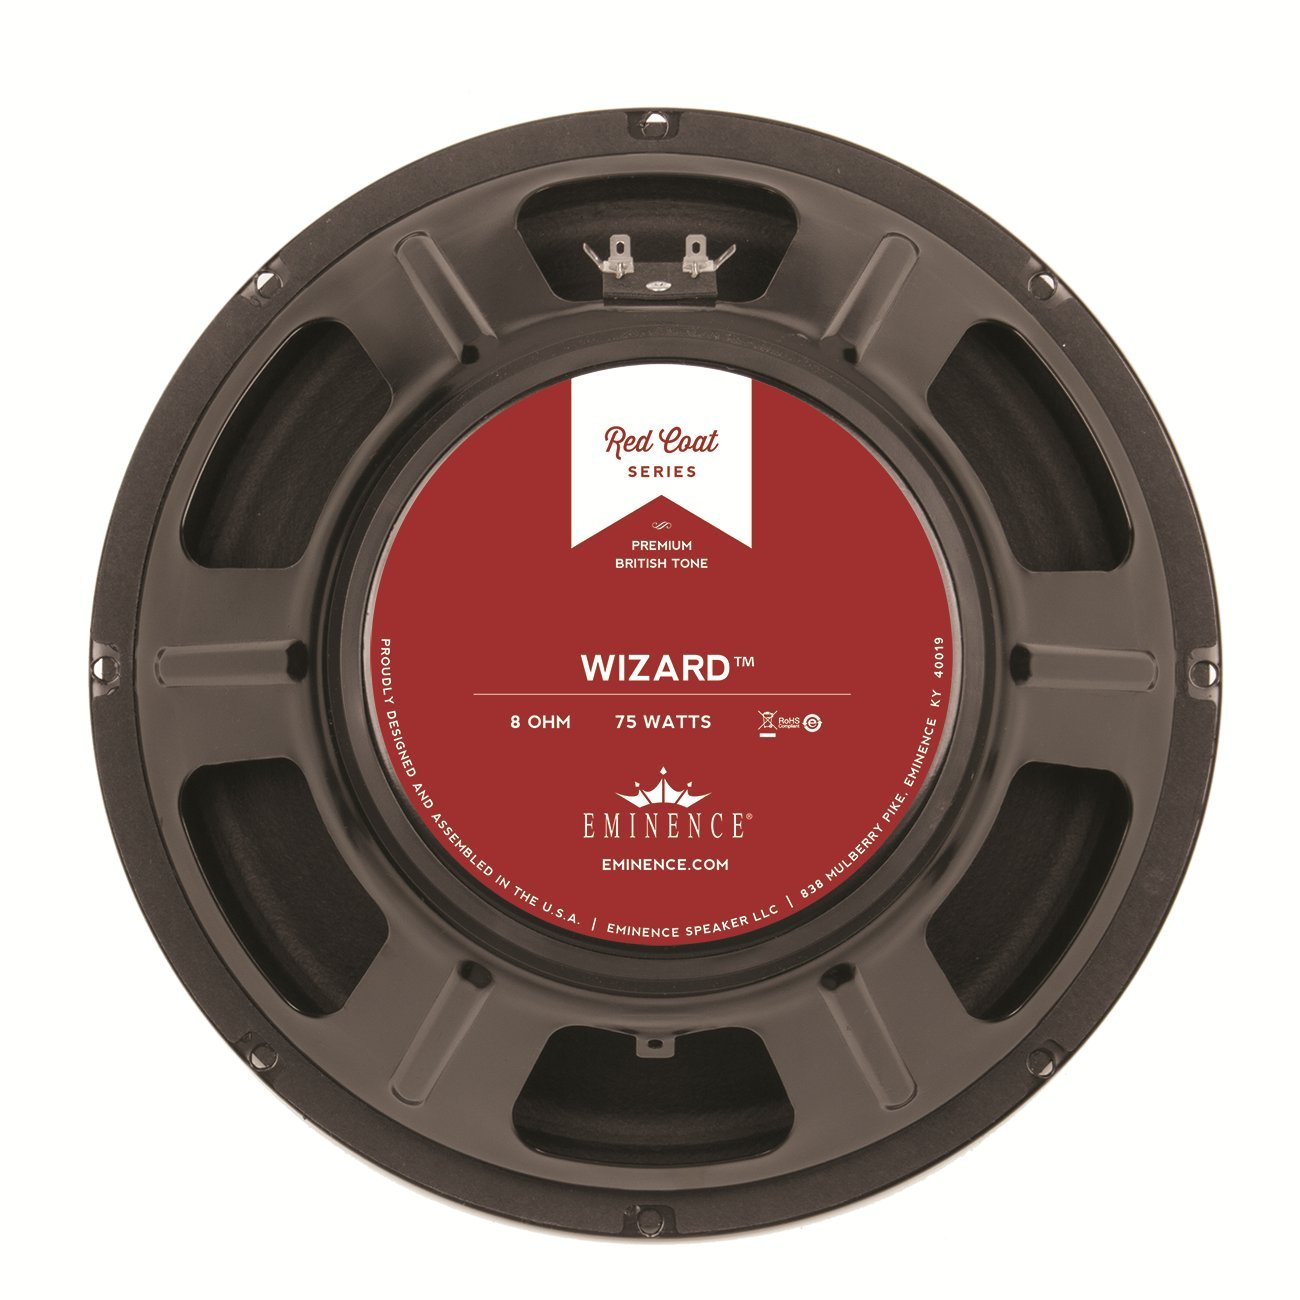 Eminence Red Coat Wizard 12'' Guitar Speaker, 75 Watts at 8 Ohms